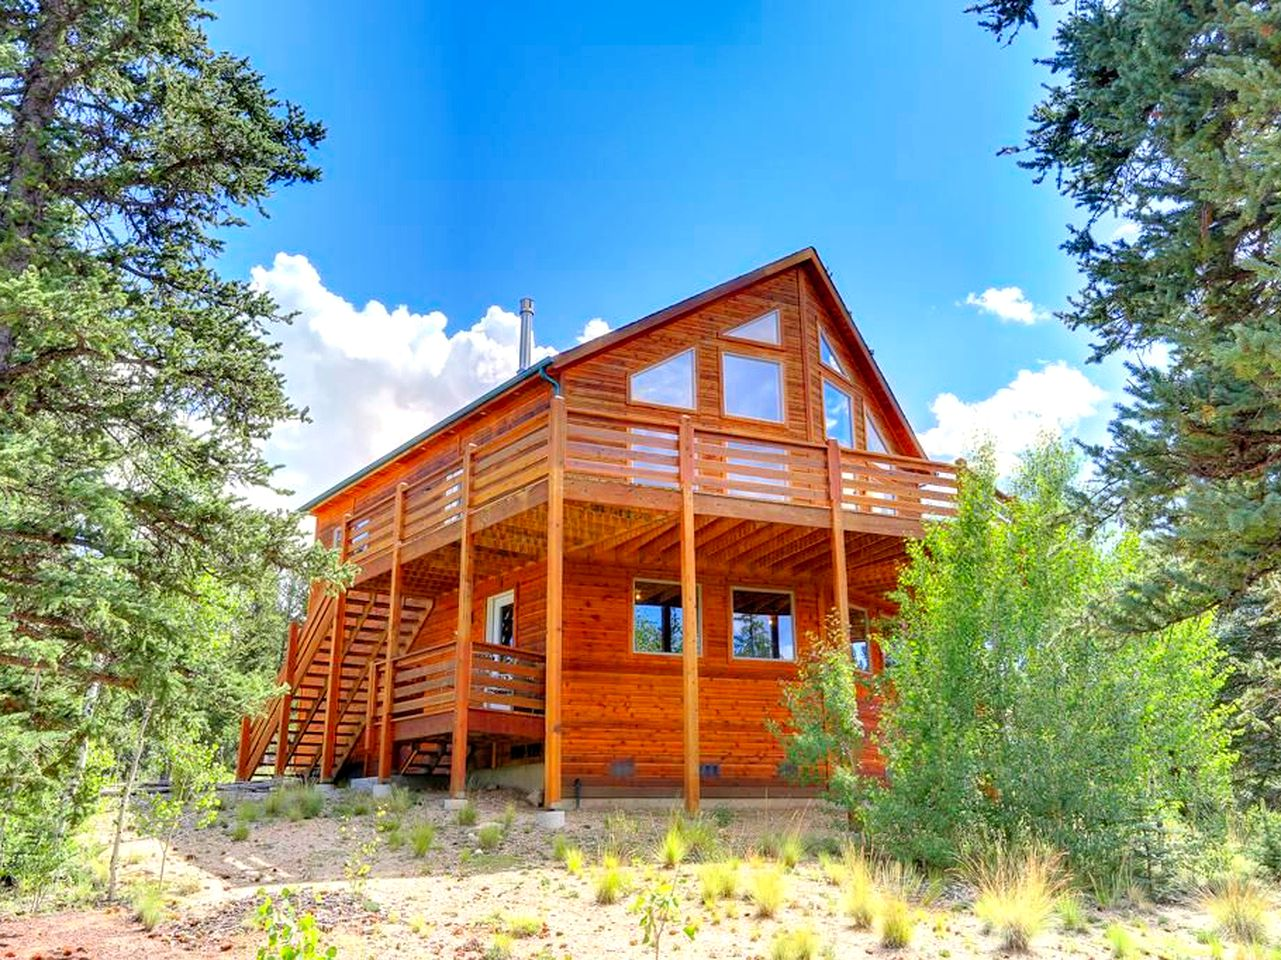 Two-story log cabin rental surrounded by trees in the Rocky Mountains near Jefferson, Colorado.